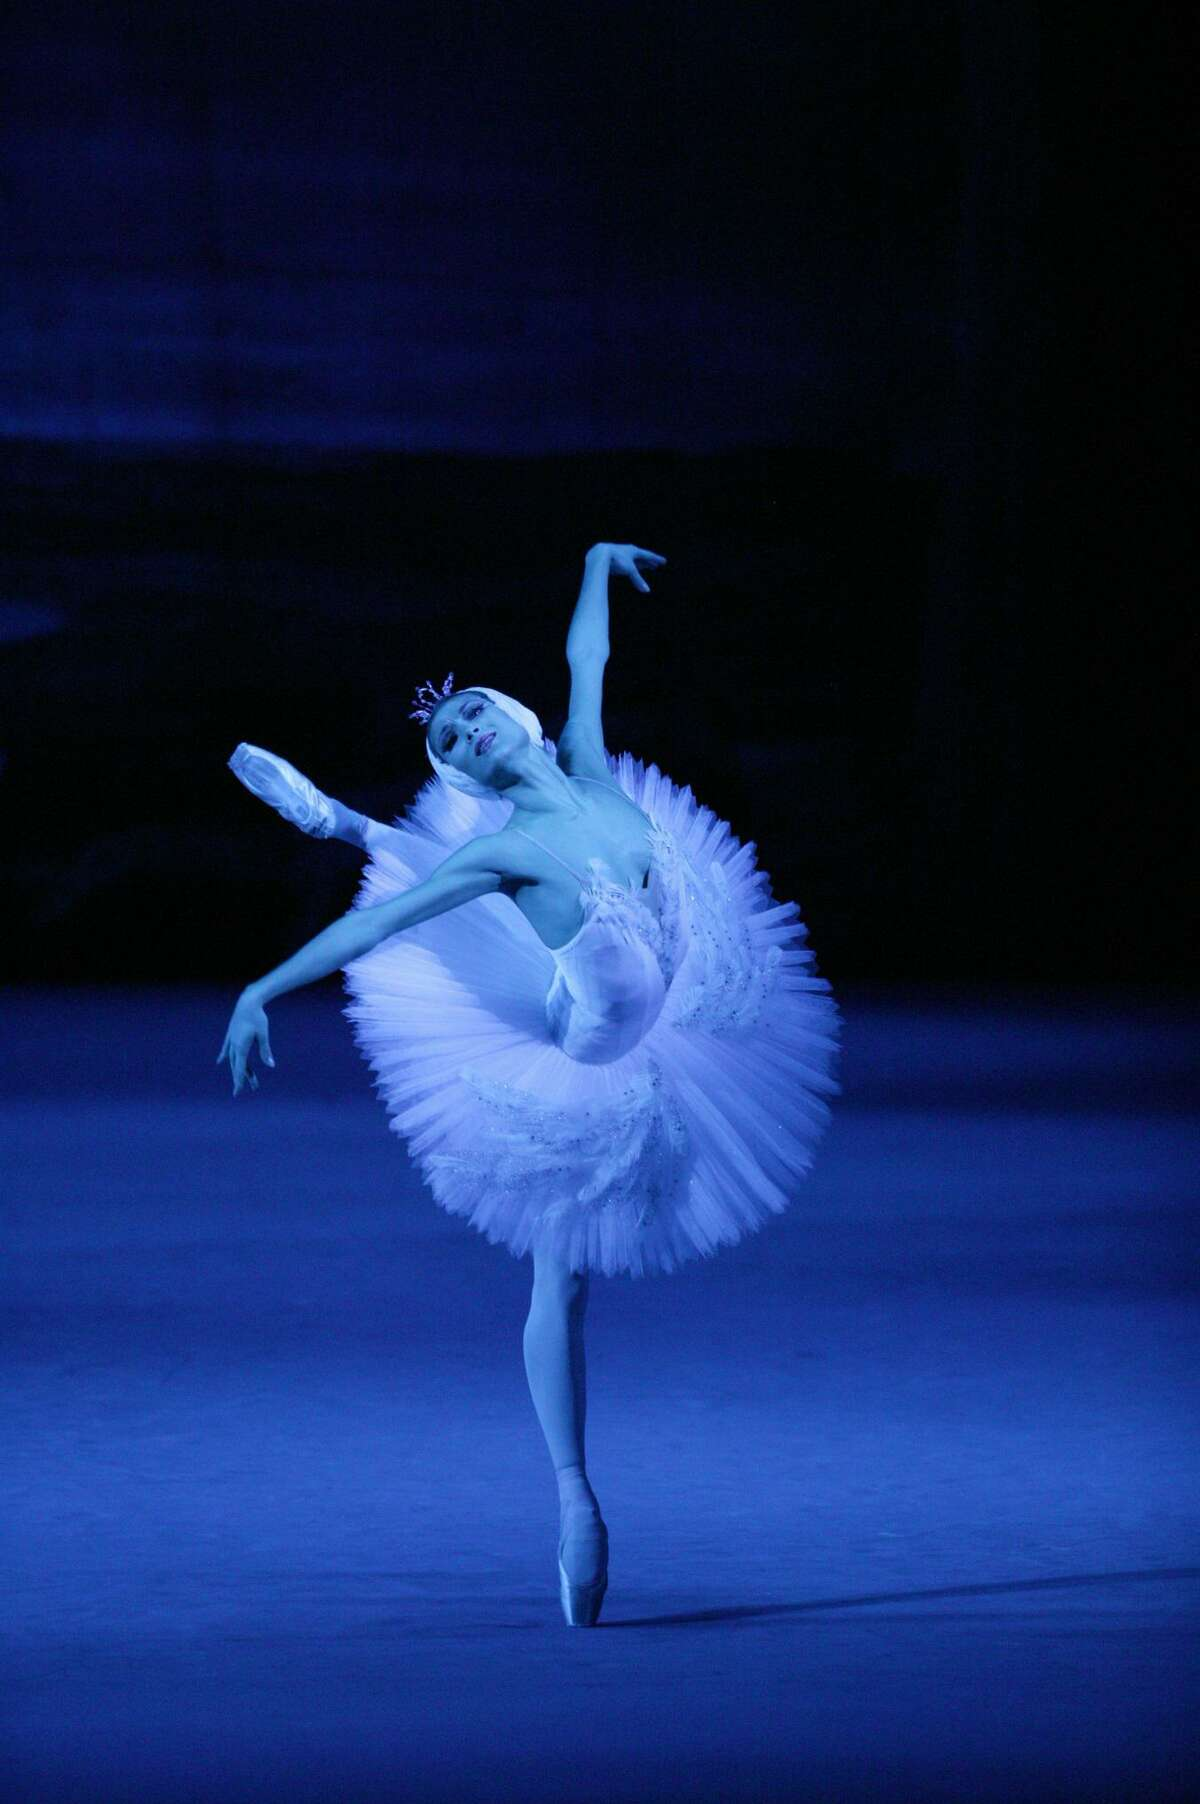 The Bolshoi Ballet's Swan Lake will be screened on Aug. 16 at 4 p.m. at the Ridgefield Playhouse, 80 East Ridge Rd., Ridgefield. Tickets: $25. Info: 203-438-5795, ridgefieldplayhouse.org.